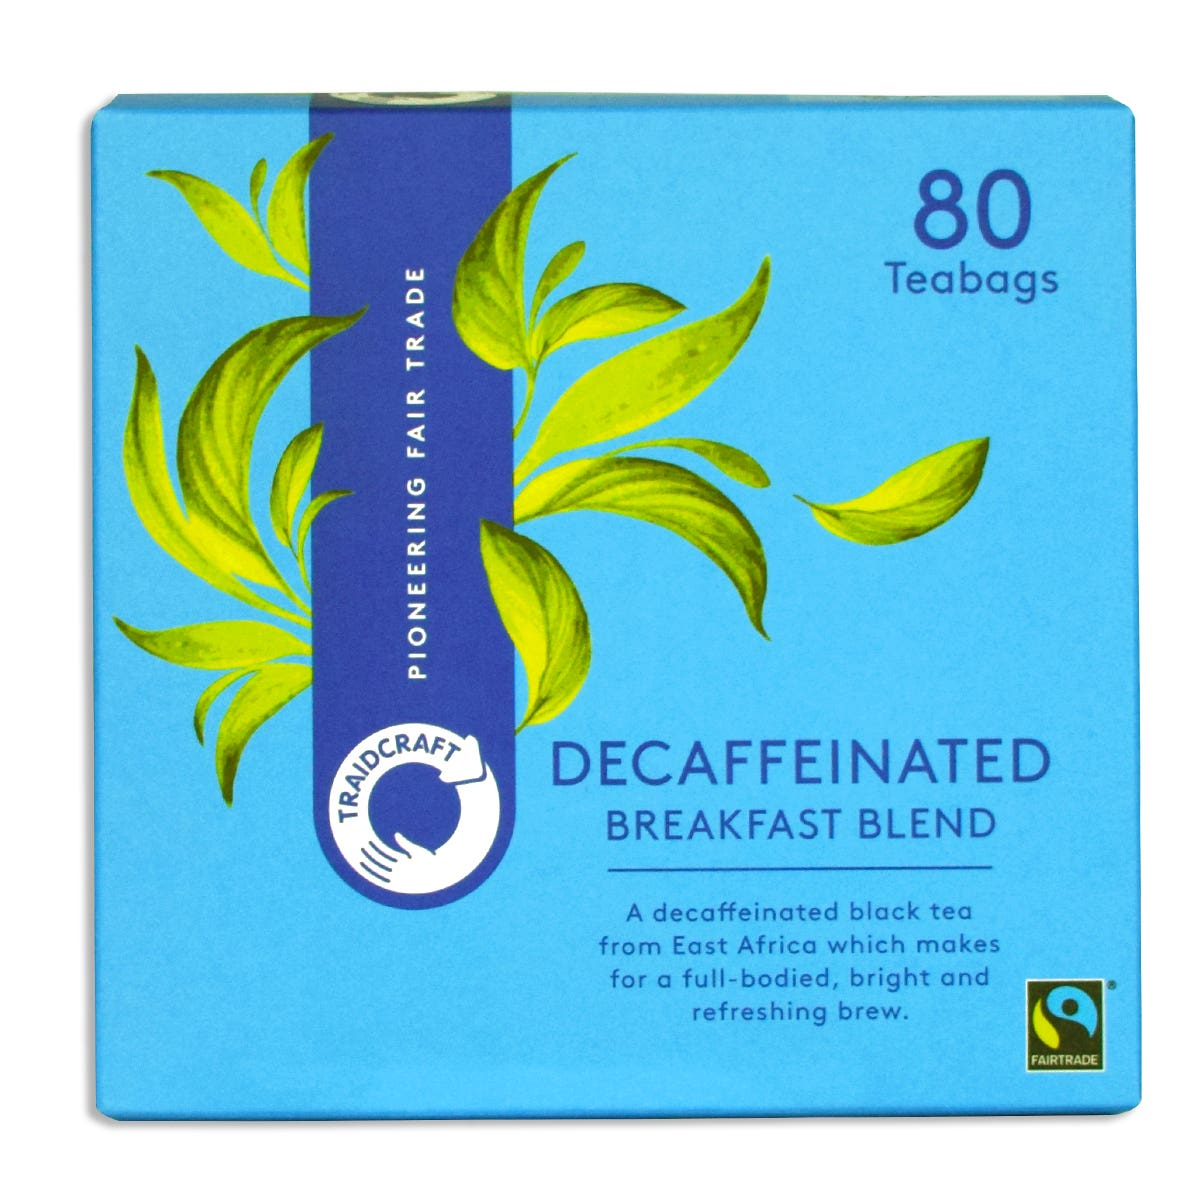 Traidcraft Breakfast Blend Decaffeinated Teabags (6x80 bags) CASE